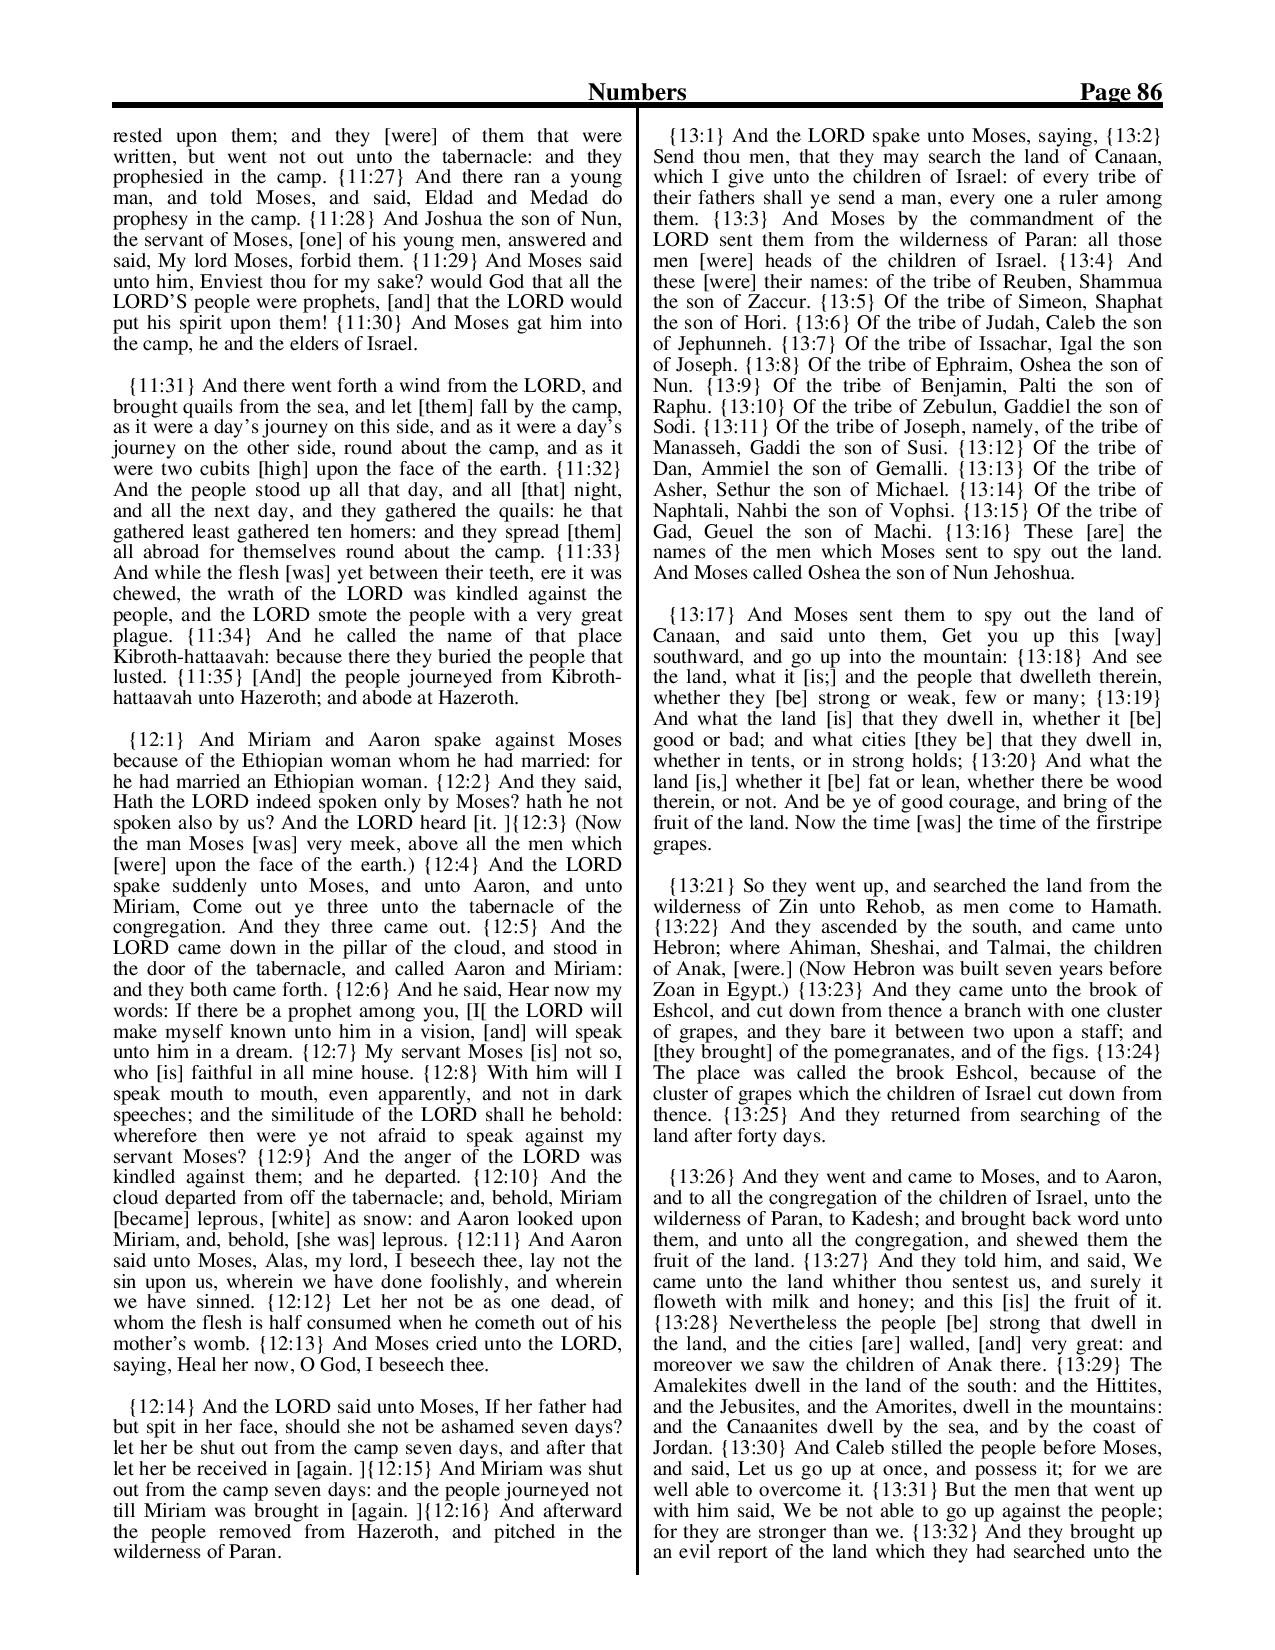 King-James-Bible-KJV-Bible-PDF-page-107